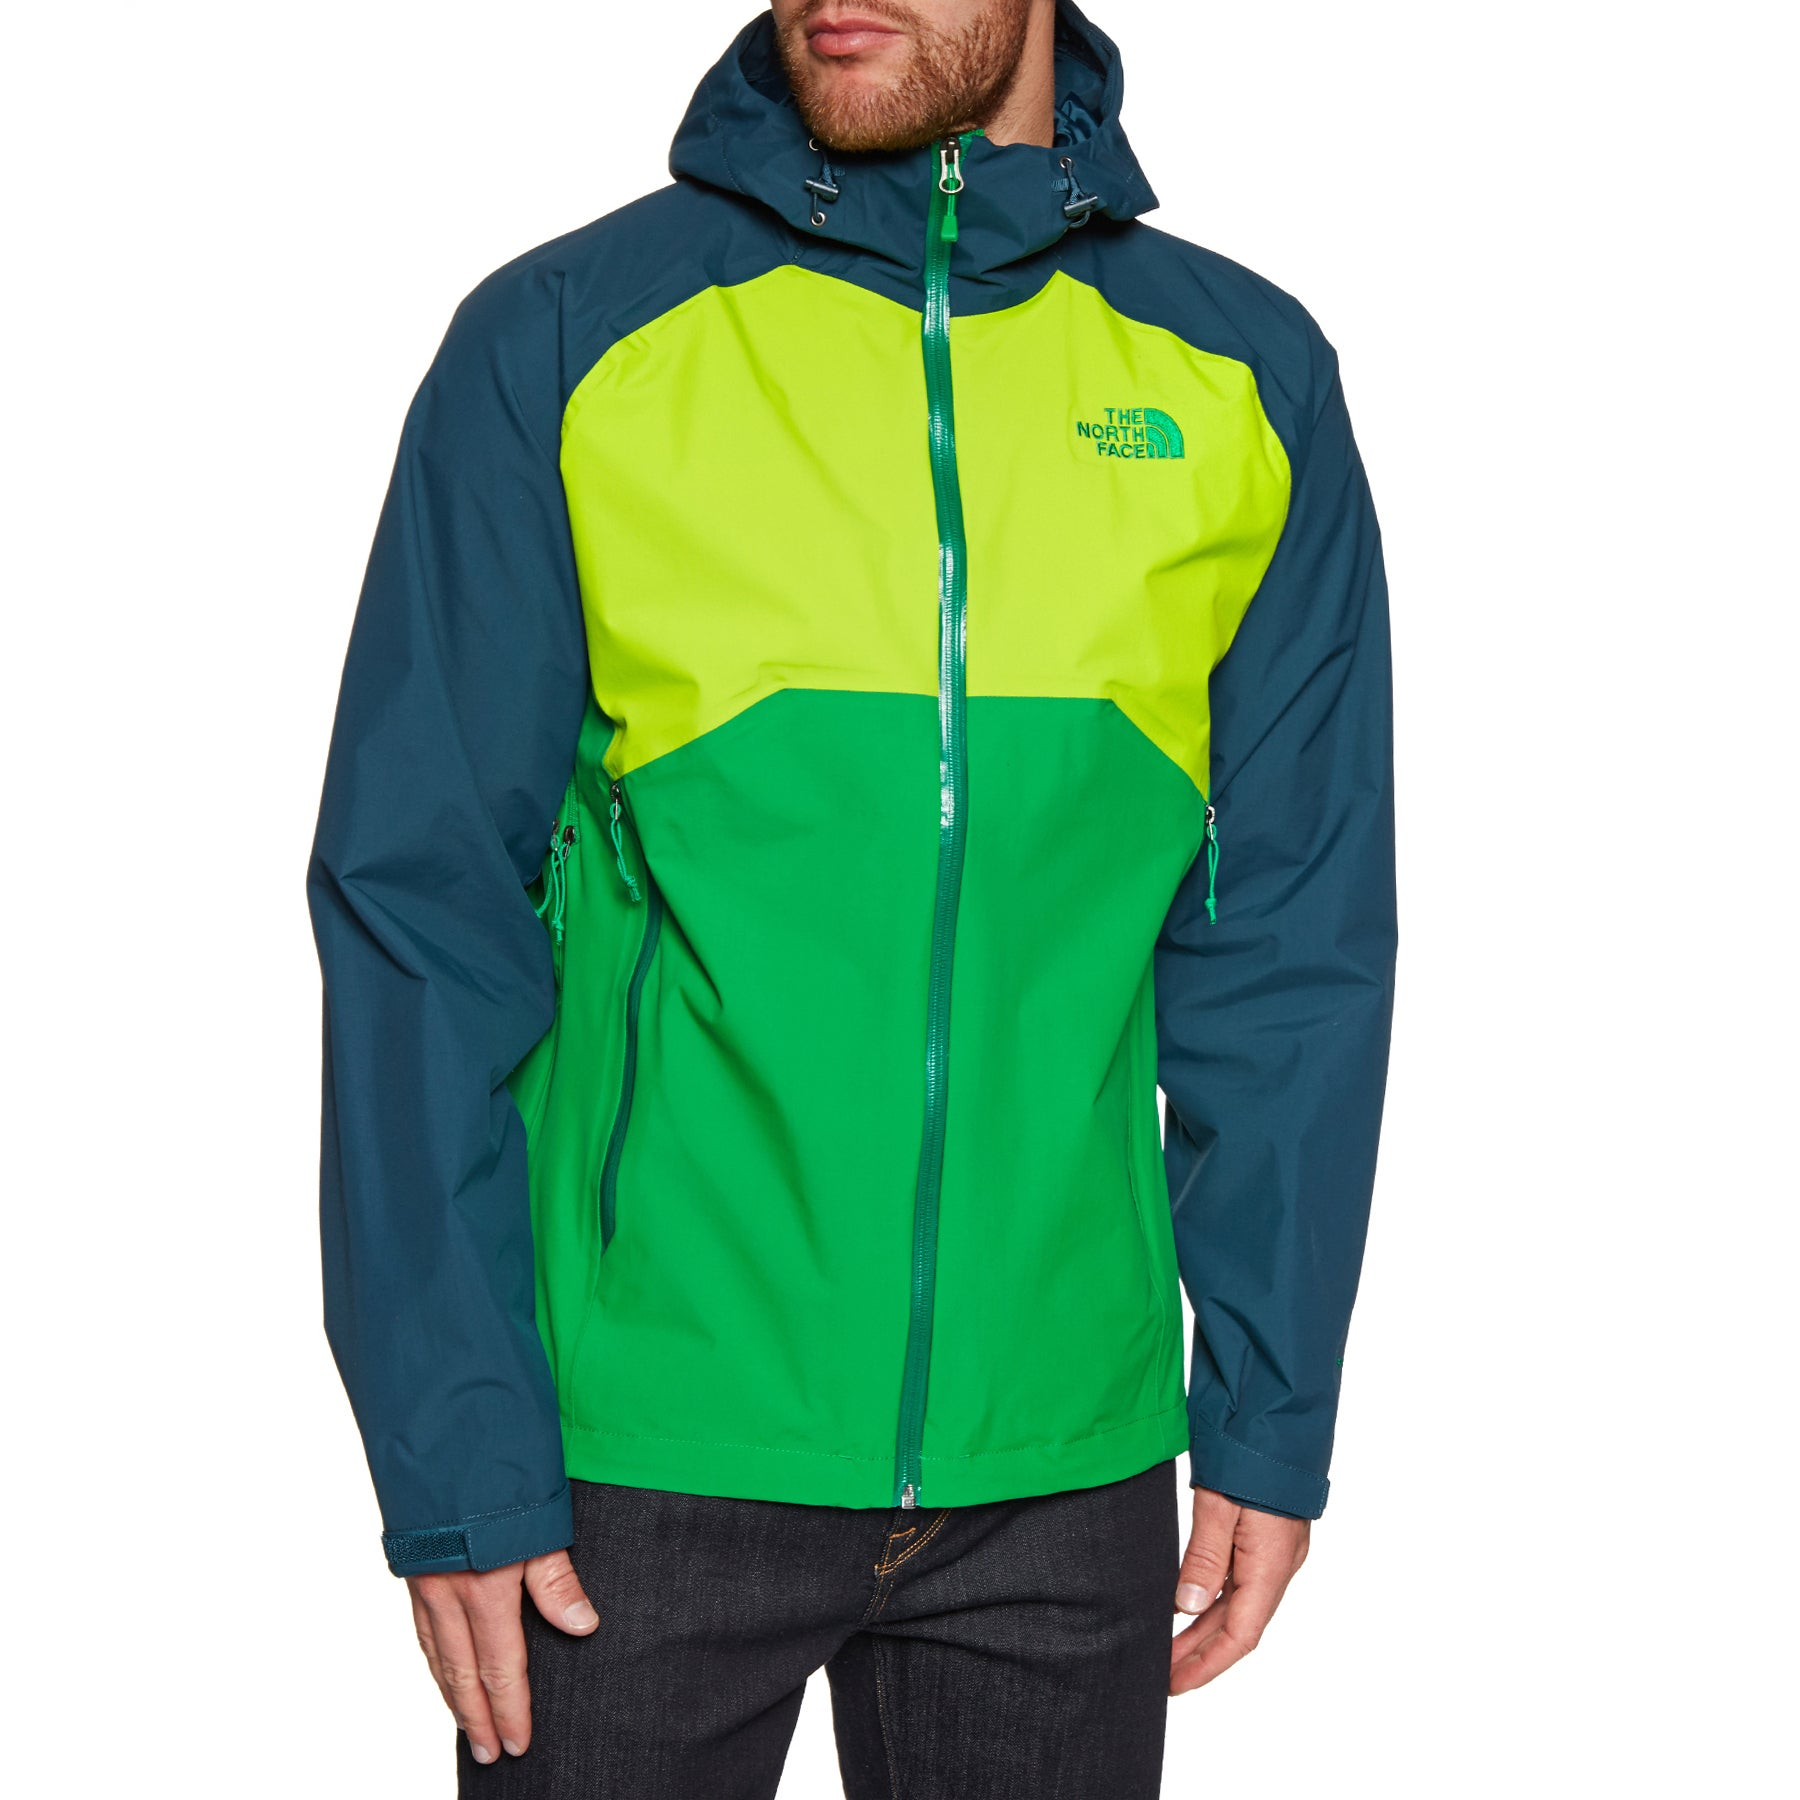 North Face Stratos Jacket - Primary Green Lime Green Kodiak Blue